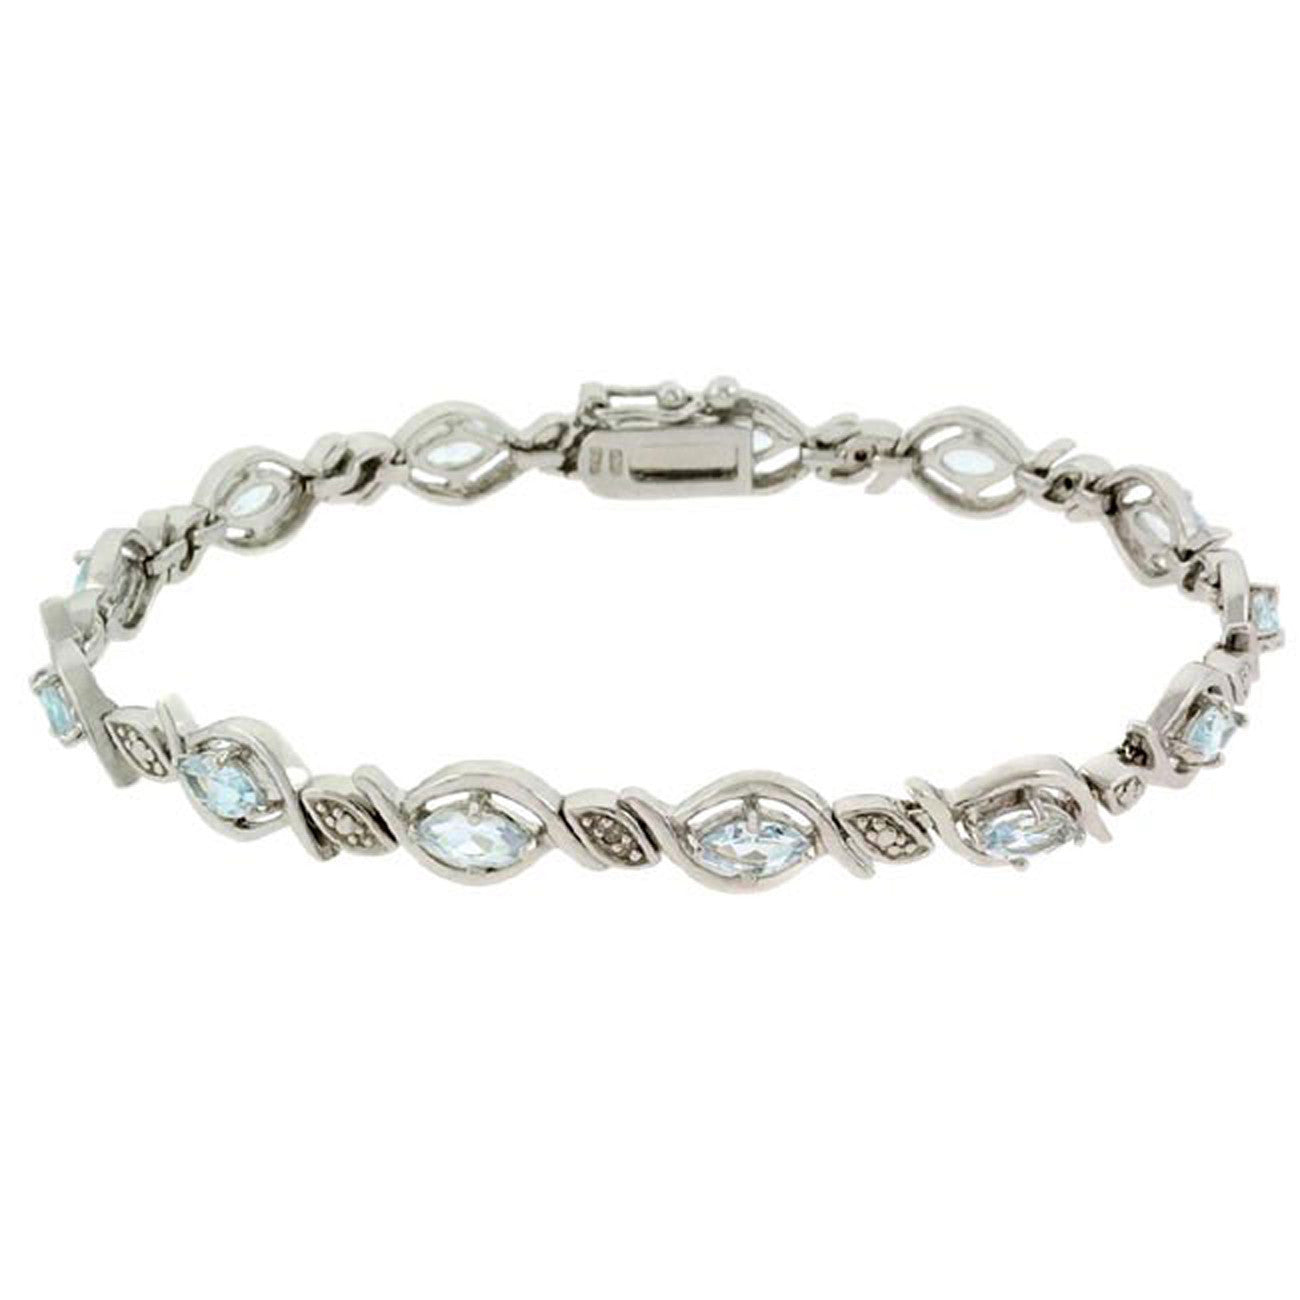 Blue Topaz Diamond Accented Bracelet in Sterling Silver